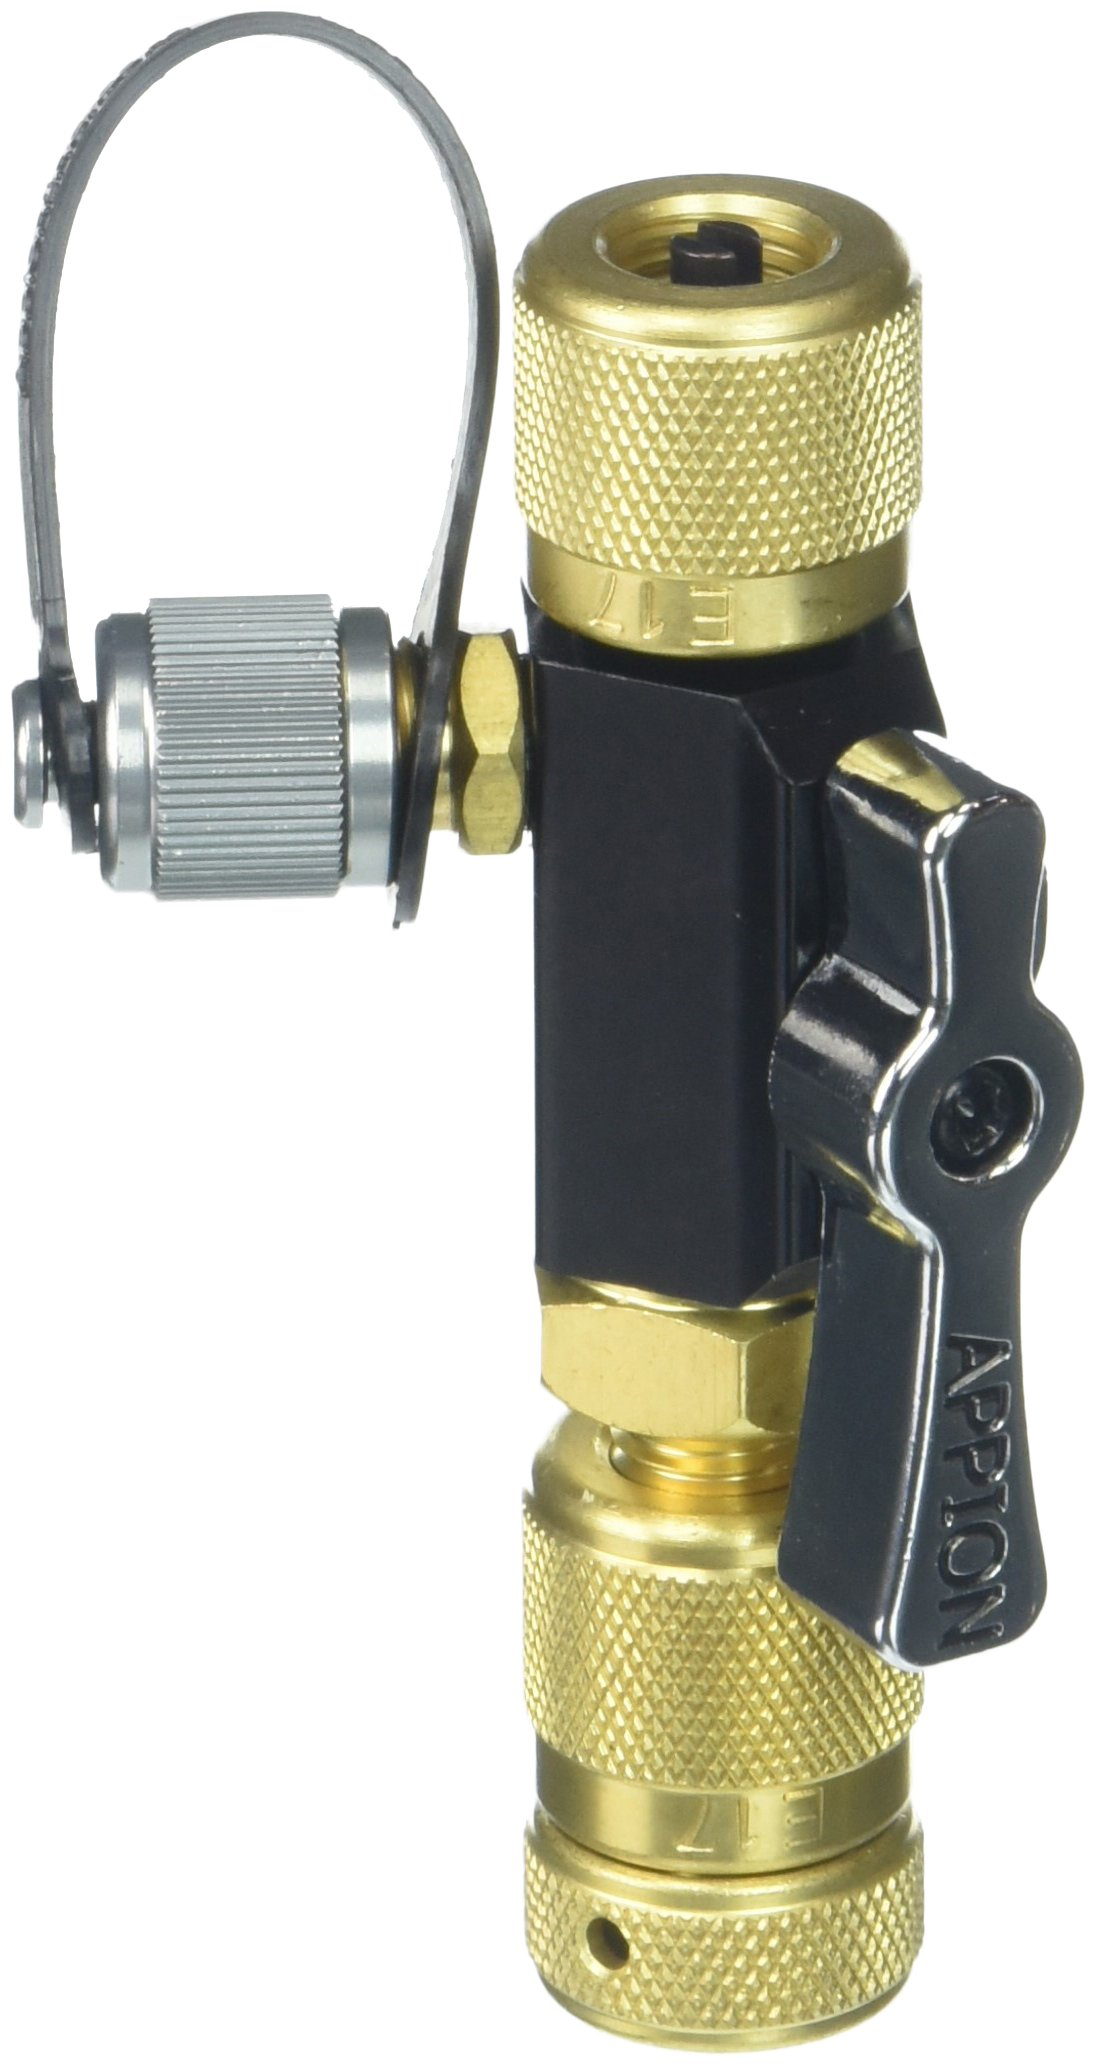 Appion MGAVCT Mega Flow Vacuum-Rated Valve Core Removal Tool, 1/4'' Connection, Black by Appion